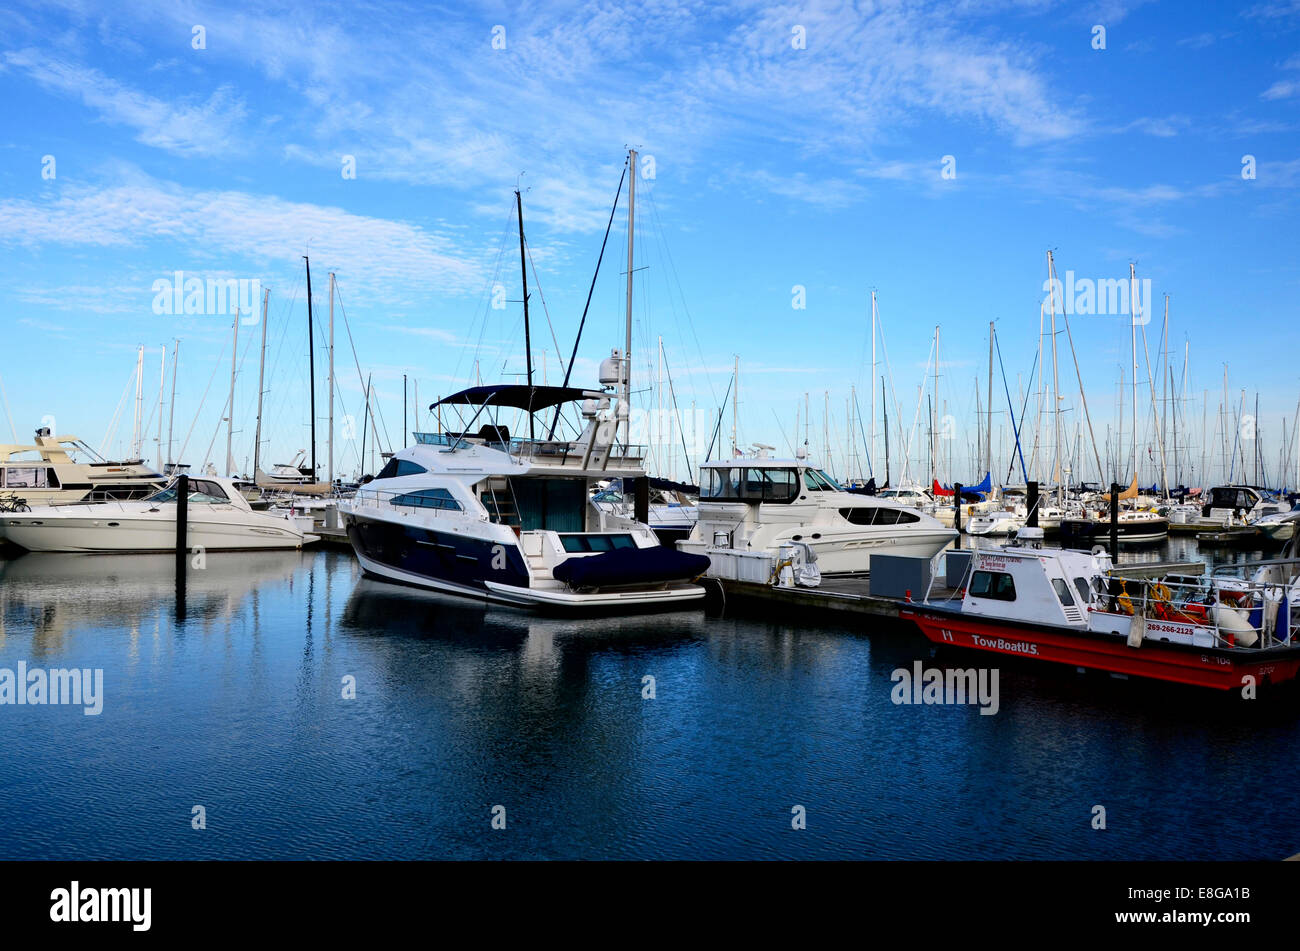 Boats in DuSable Harbour / Harbor - Stock Image